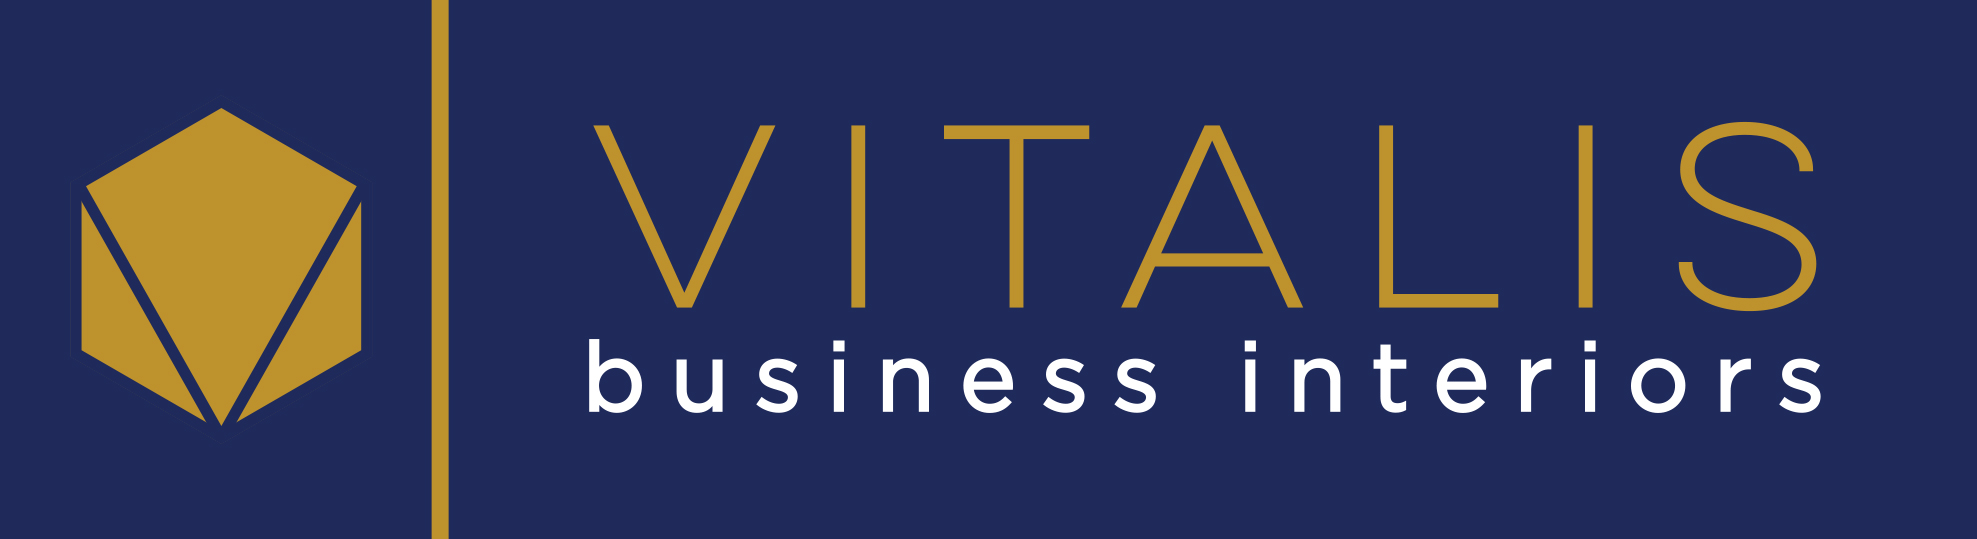 Vitalis Business Interiors